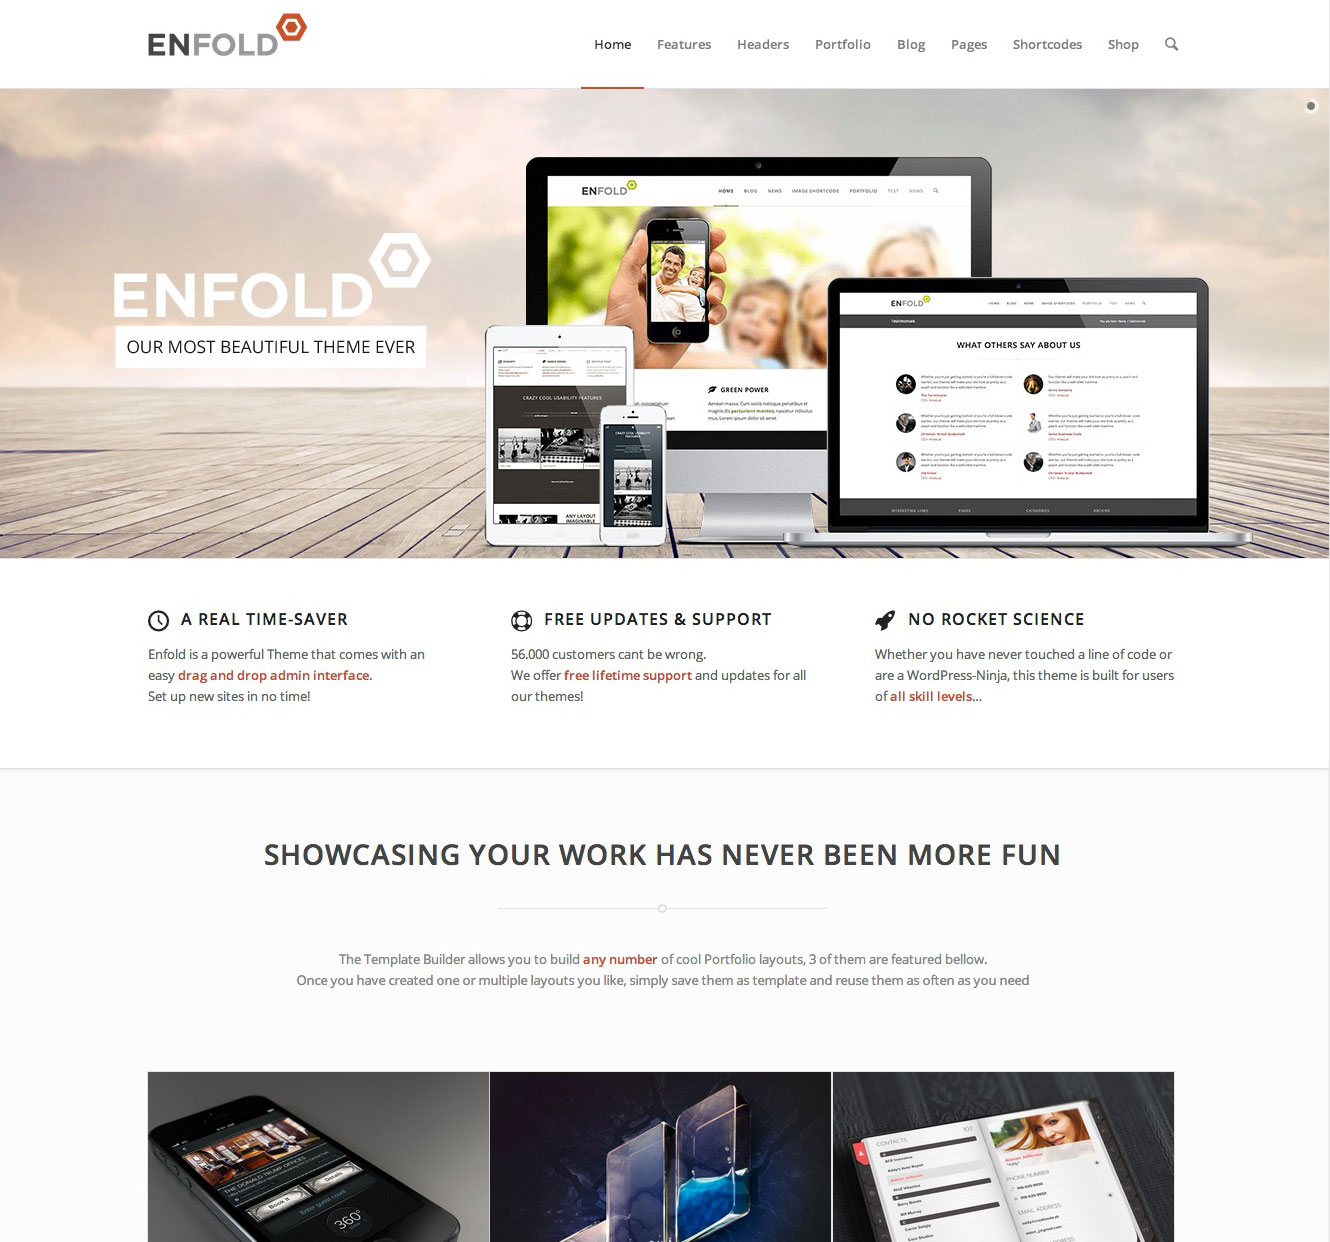 Enfold Demo Overview – A list of all available Enfold demos